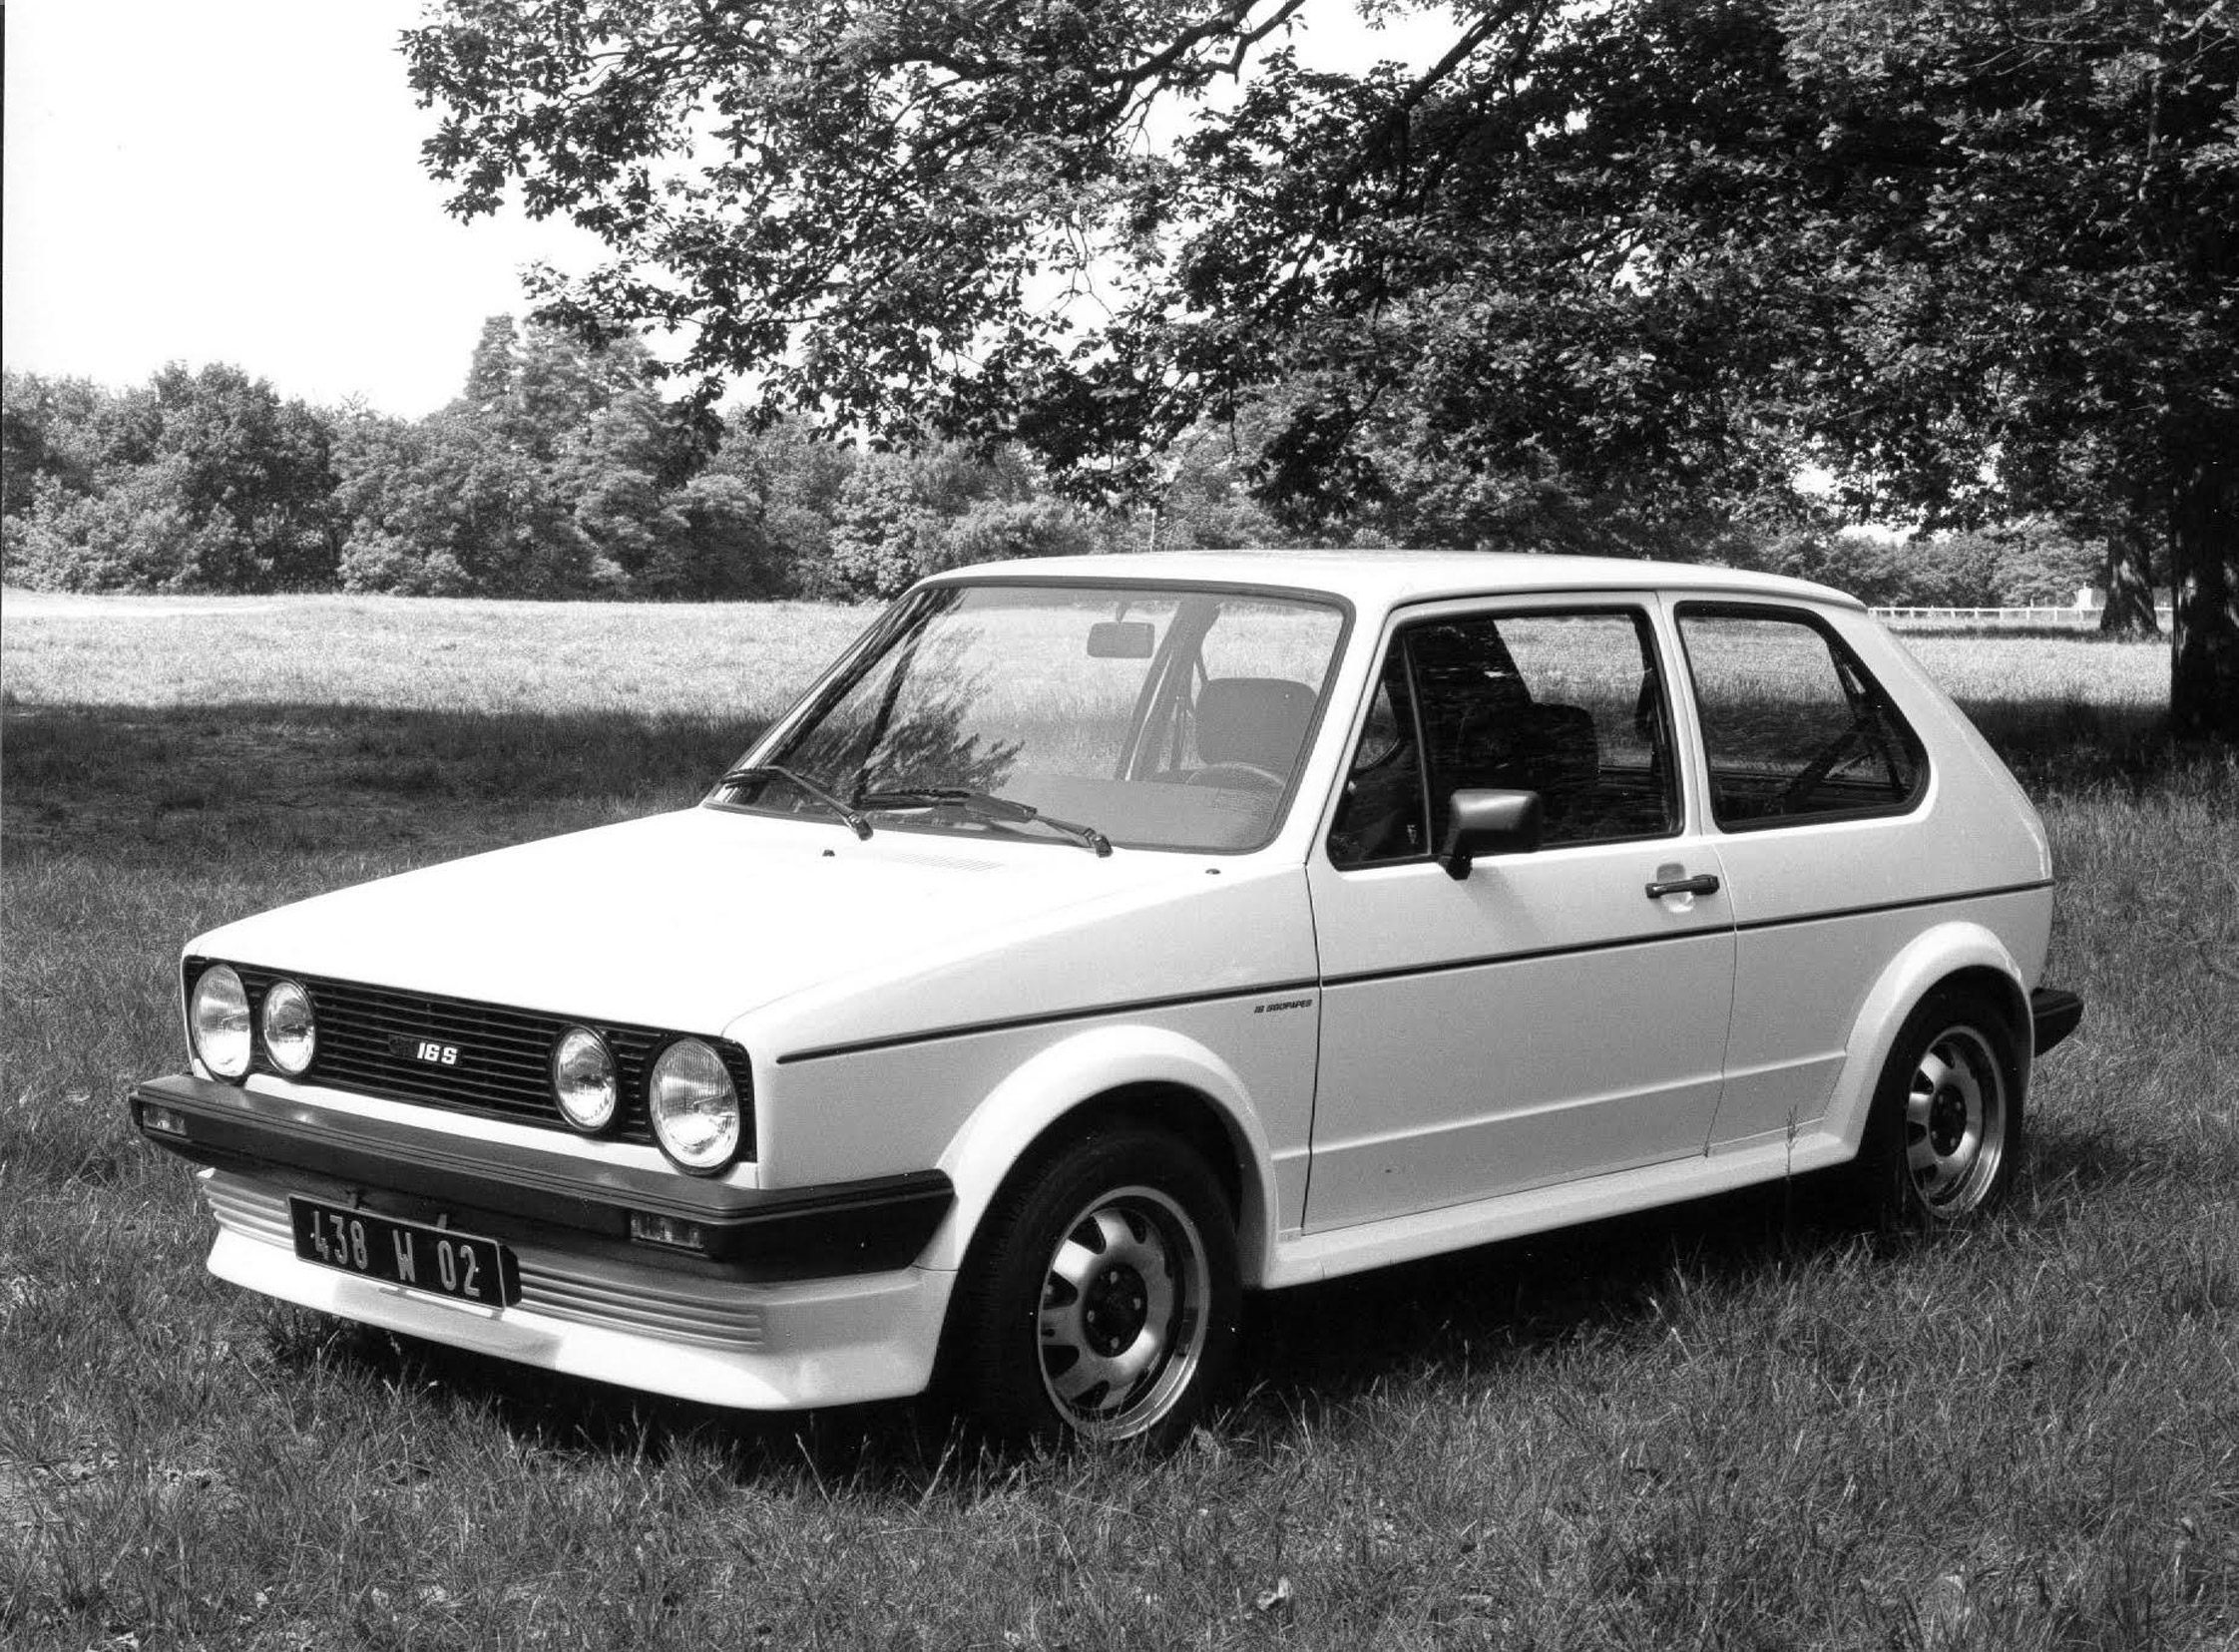 golf gti 16s oettinger 1981 volkswagen golf gti 40 ans de sportivit diaporama photo. Black Bedroom Furniture Sets. Home Design Ideas